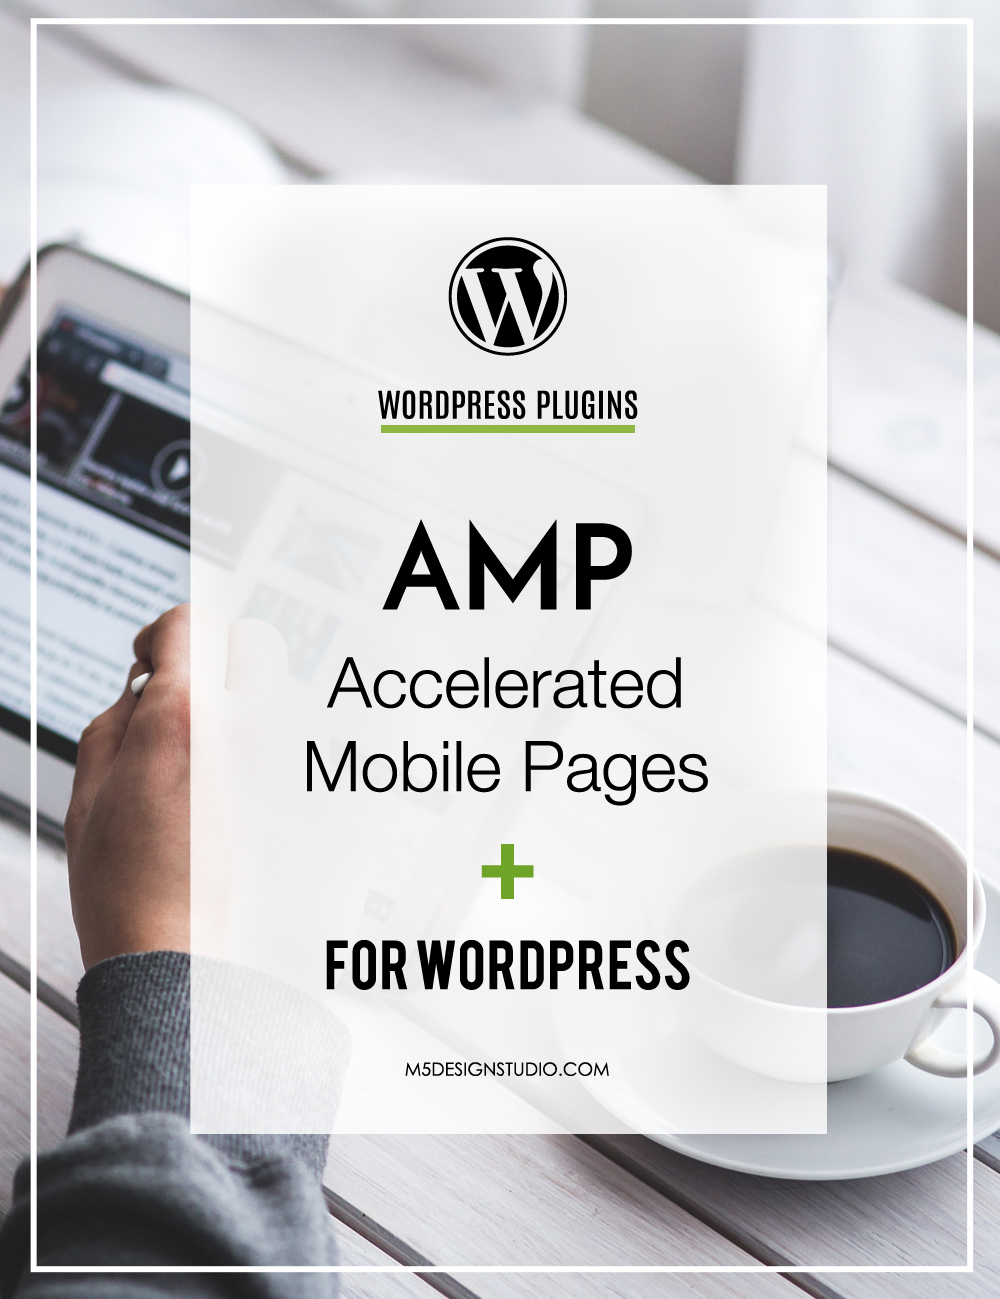 wordpress AMP orlando